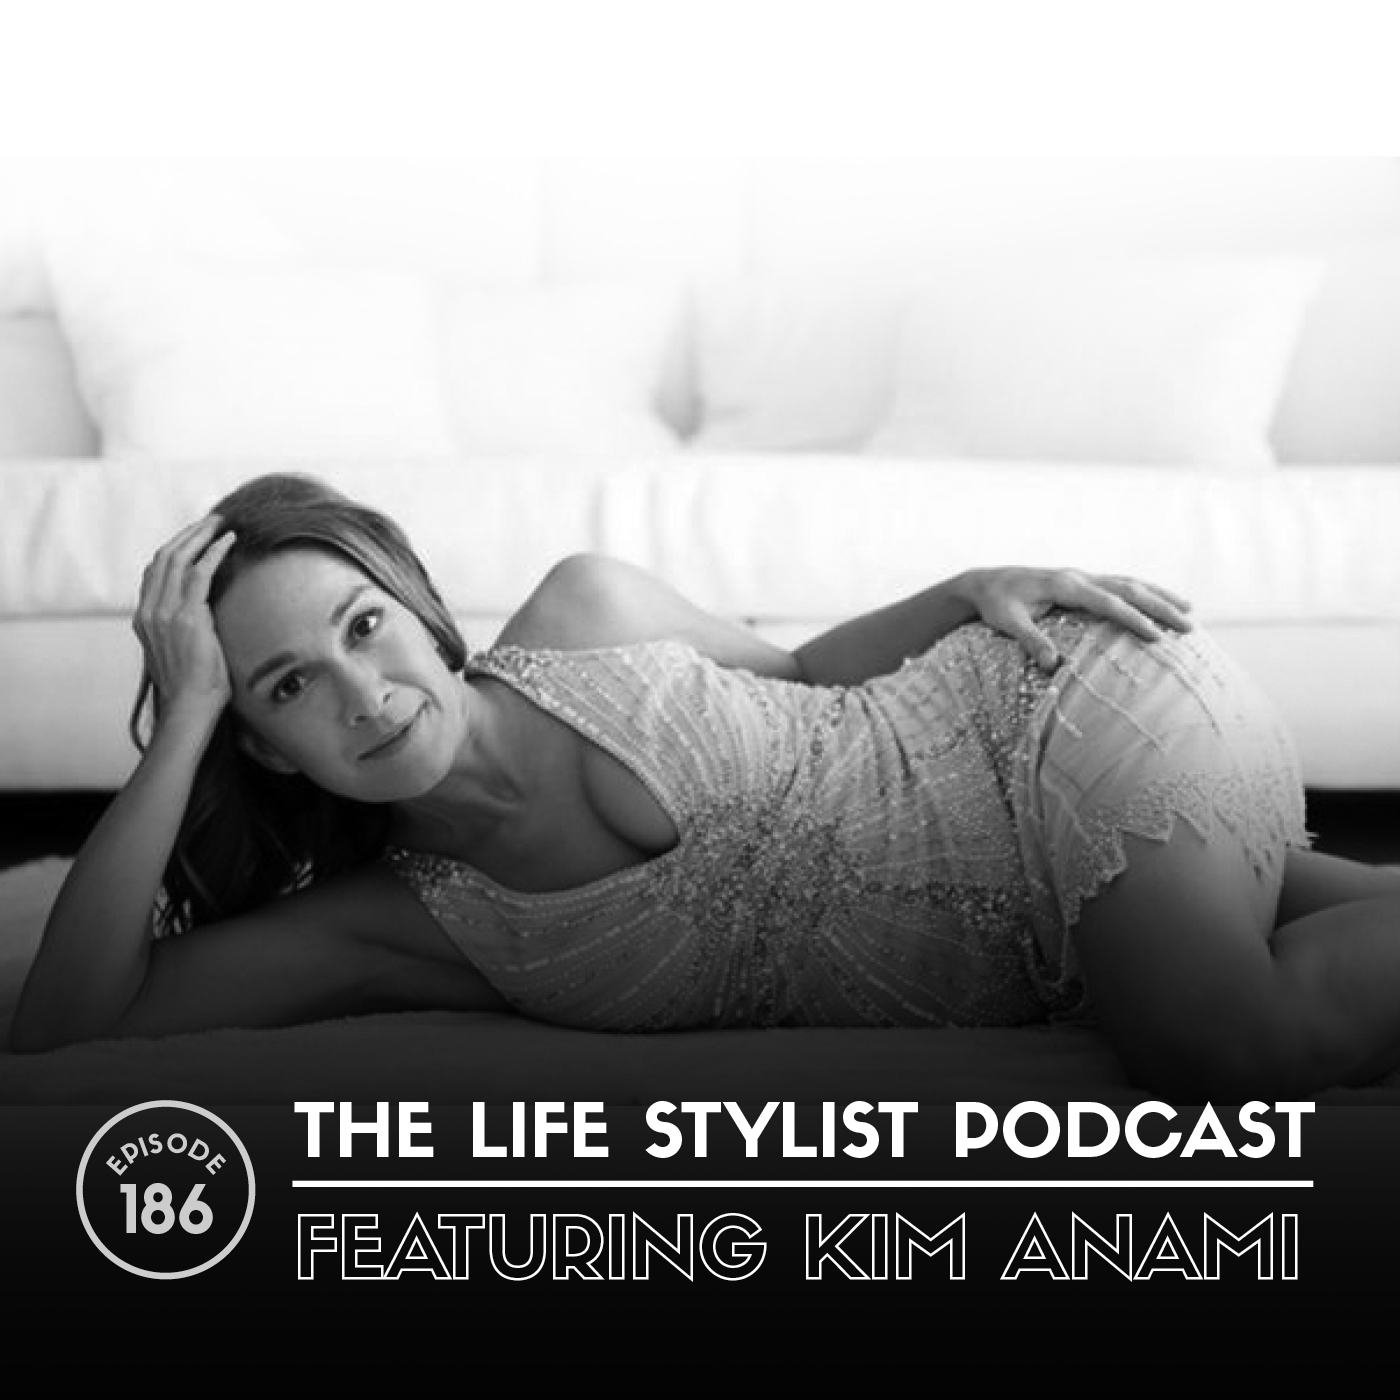 Kim Anami is here to infuse more passion into your life and bed.  She is a holistic sex + relationship coach, writer and speaker. Her work is a spiritual synthesis of over two decades of Tantra, Taoism, Osho, Transpersonal psychology, philosophy and a host of quantum growth-accelerating practices she uses to propel clients into higher stratospheres of connection, intimacy, energy and creativity.  Her musings on life and love have graced Playboy, Elle, Oprah Magazine, Marie Claire, Shape, The Sunday Times (UK), The Daily Mail, GQ and national talk shows from E! Network to CNN and NPR.  She divides her time between Bali and Los Angeles and a host of beaches in between, where she not only lives and surfs, but lifts objects with her vagina.  You can follow her globetrotting vagina and adventures on Instagram with the hashtag: #thingsiliftwithmyvagina, her sex education videos on YouTube and check out her online programs at  www.kimanami.com .